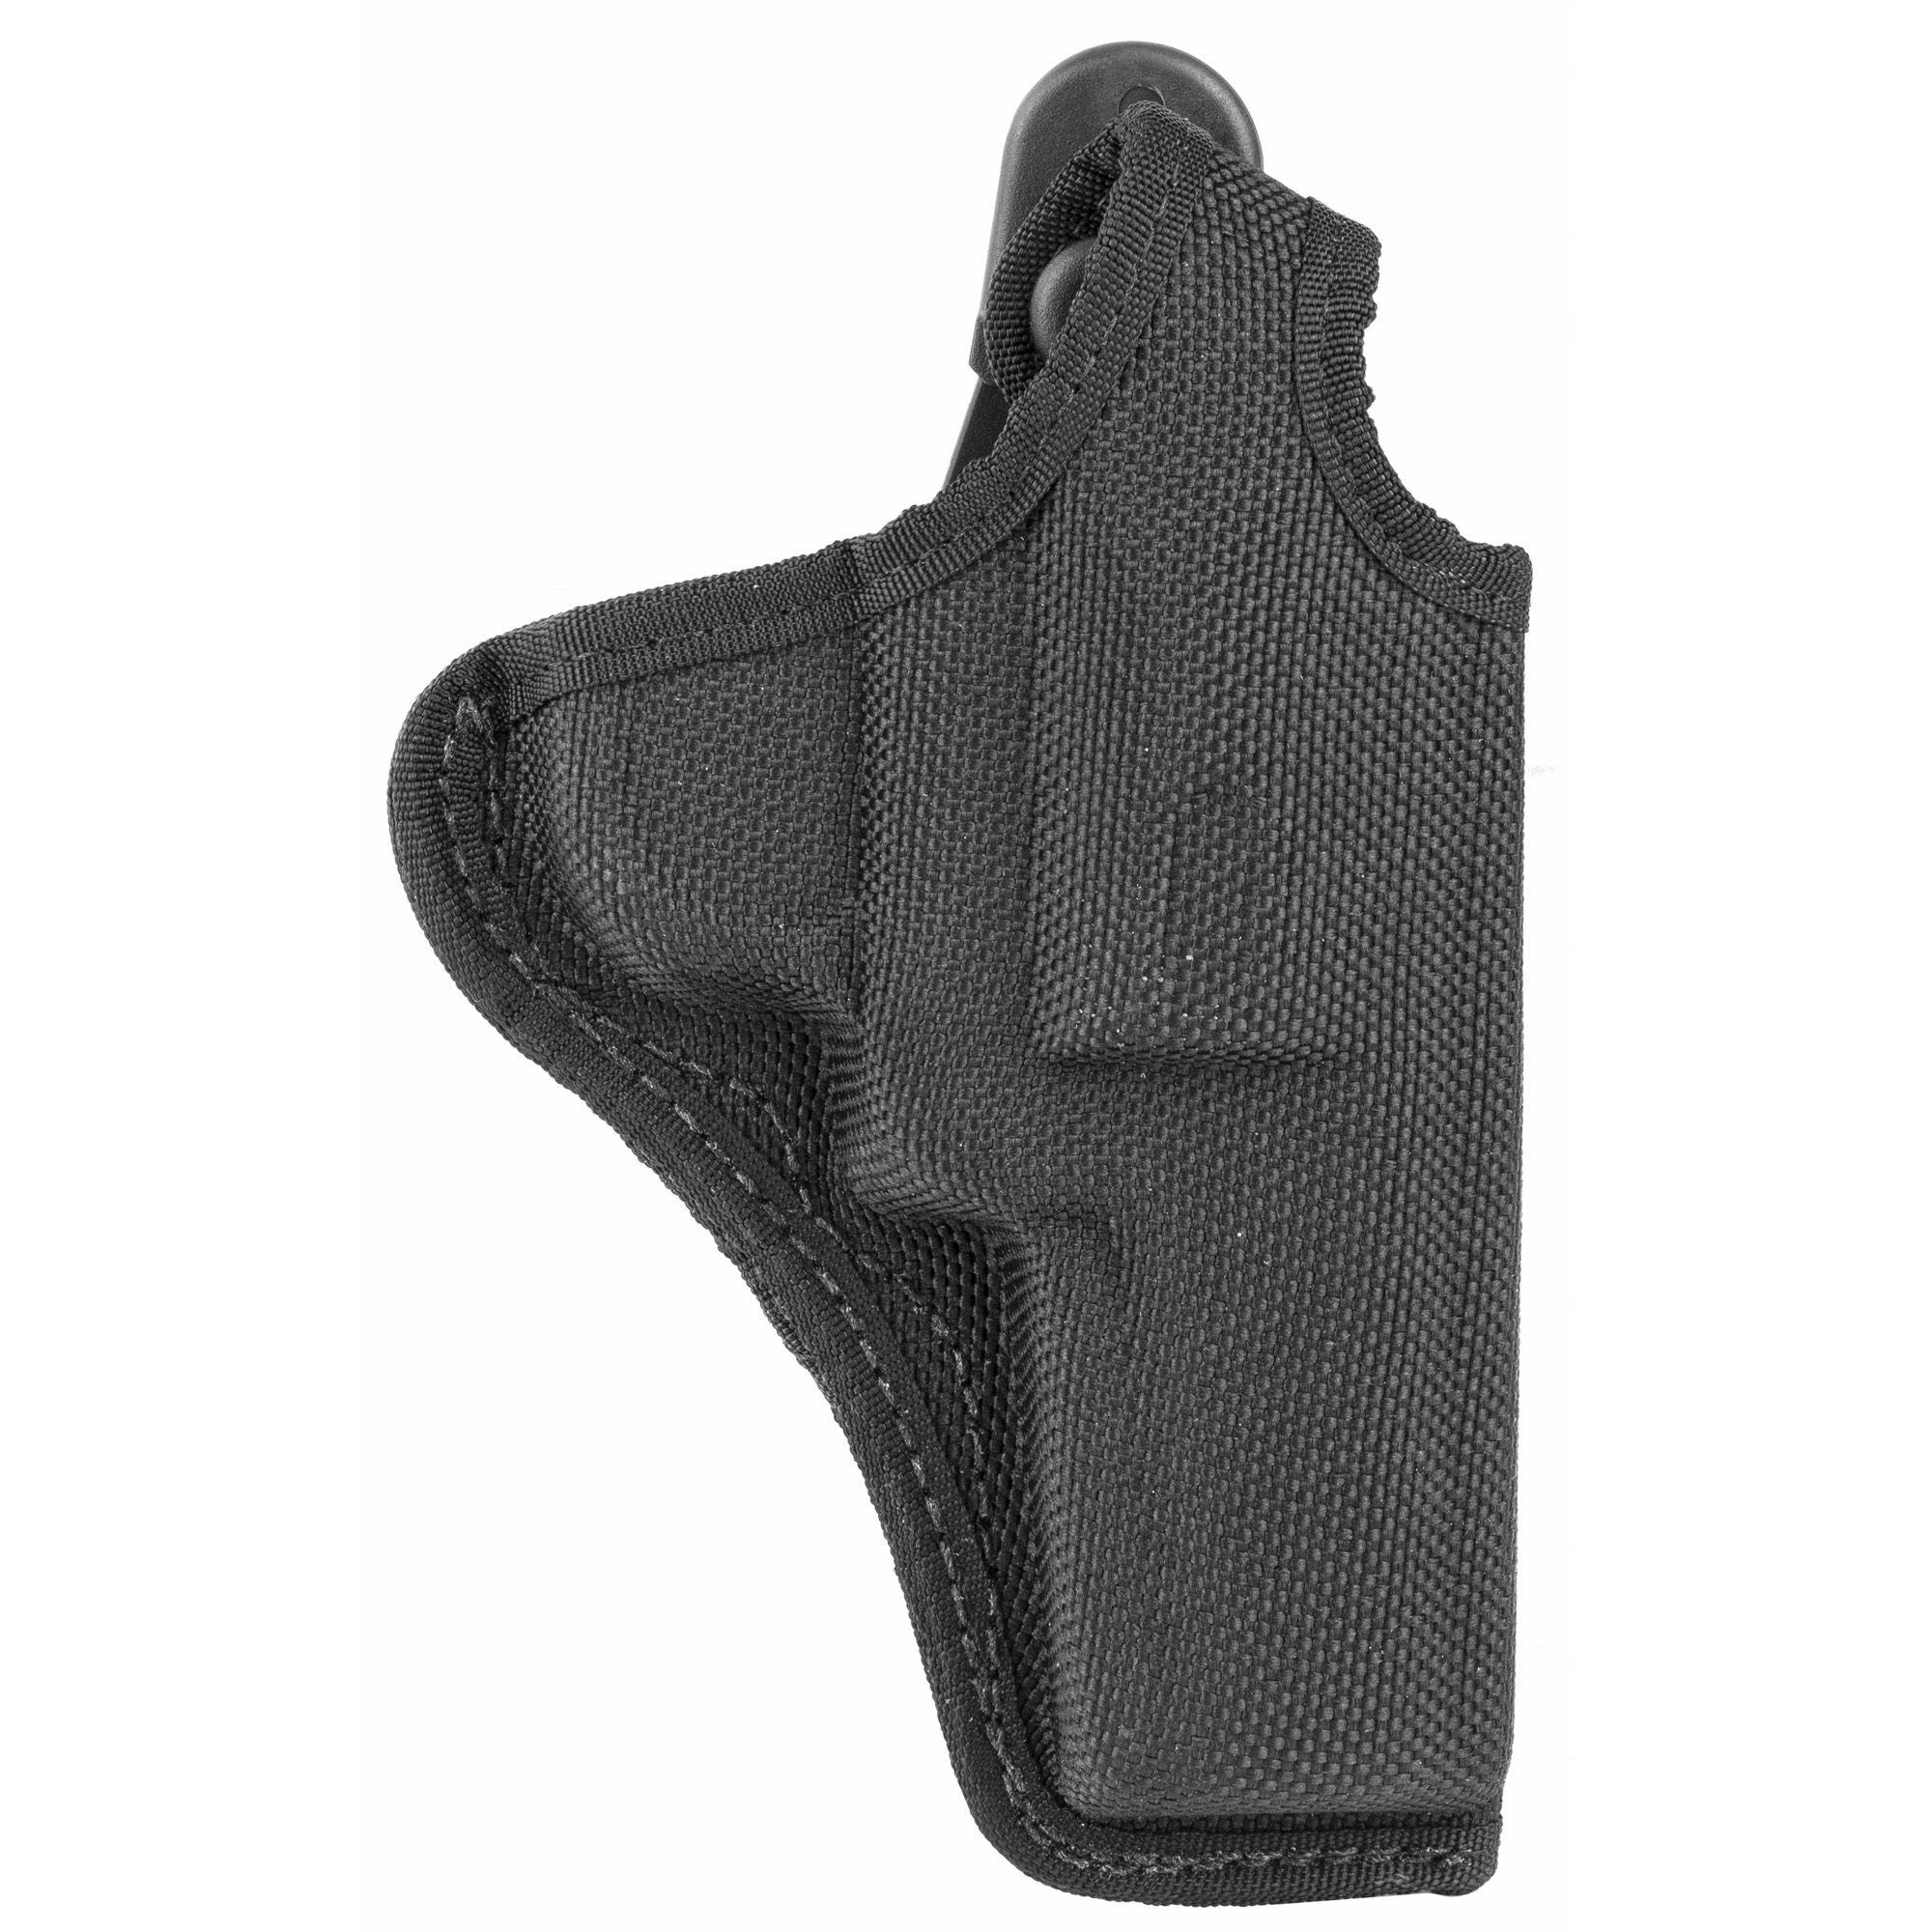 """This thumbsnap holster is suitable for outdoor and concealment applications. Its trilaminate construction of a closed-cell foam center"""" poly-knit inner lining and ballistic weave finish offers sturdy protection for the handgun. The holster rides at a 10-13 degree forward angle and the thumb break strap wraps cleanly over hammer. The belt slides through the Quick-Slide 1.75 in. (45 mm) belt loop."""